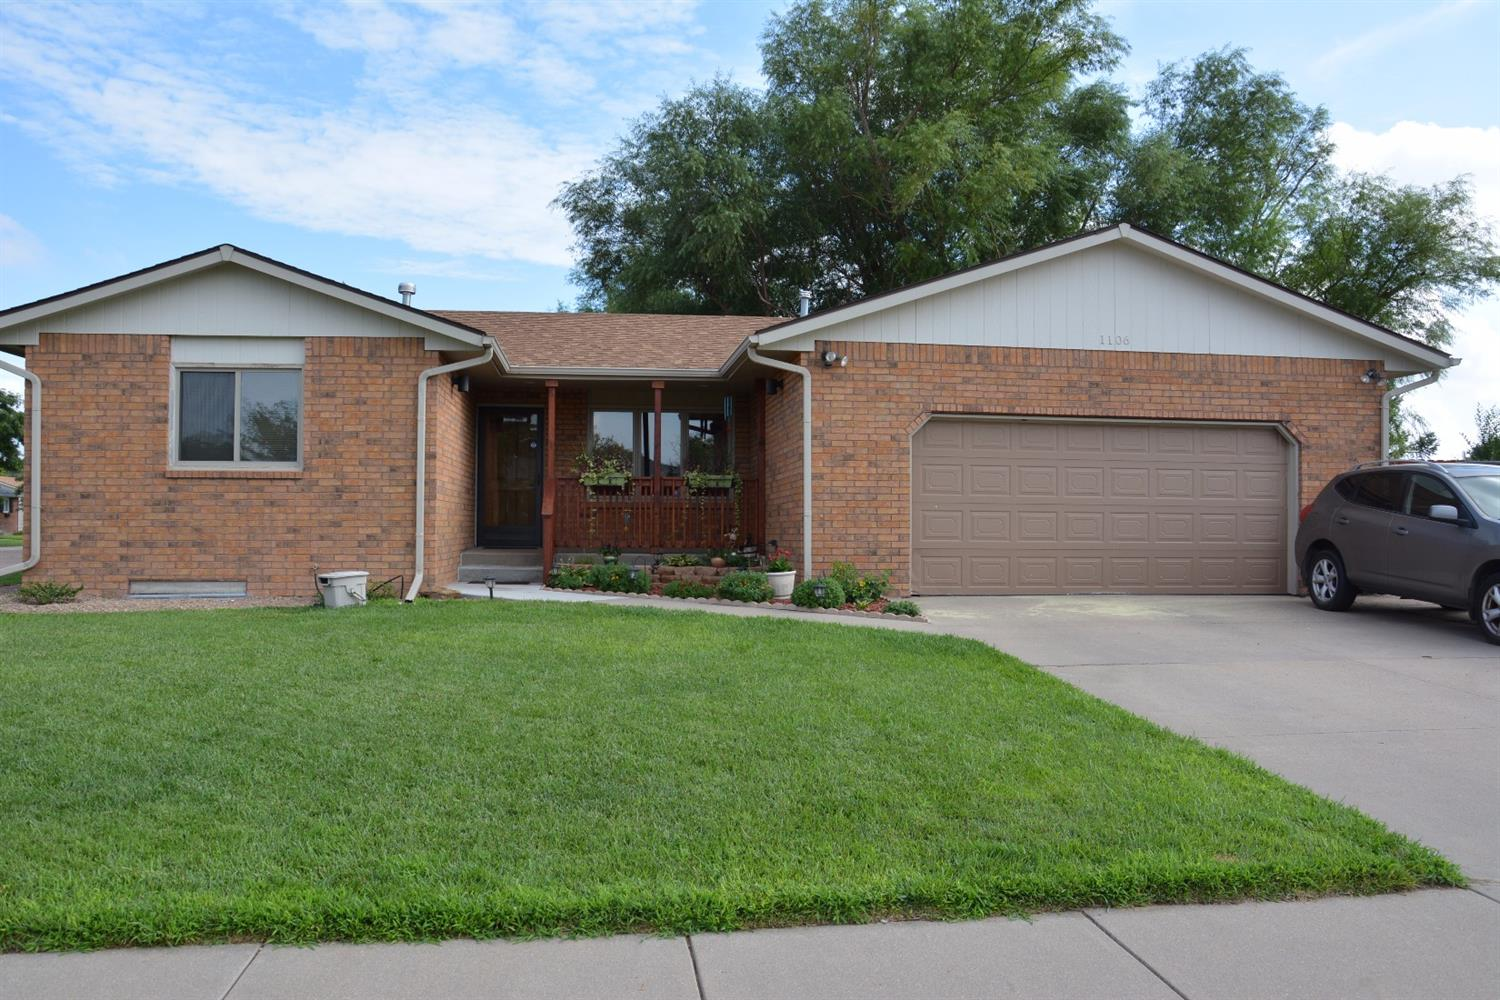 1106 Long Boulevard, Garden City, KS 67846